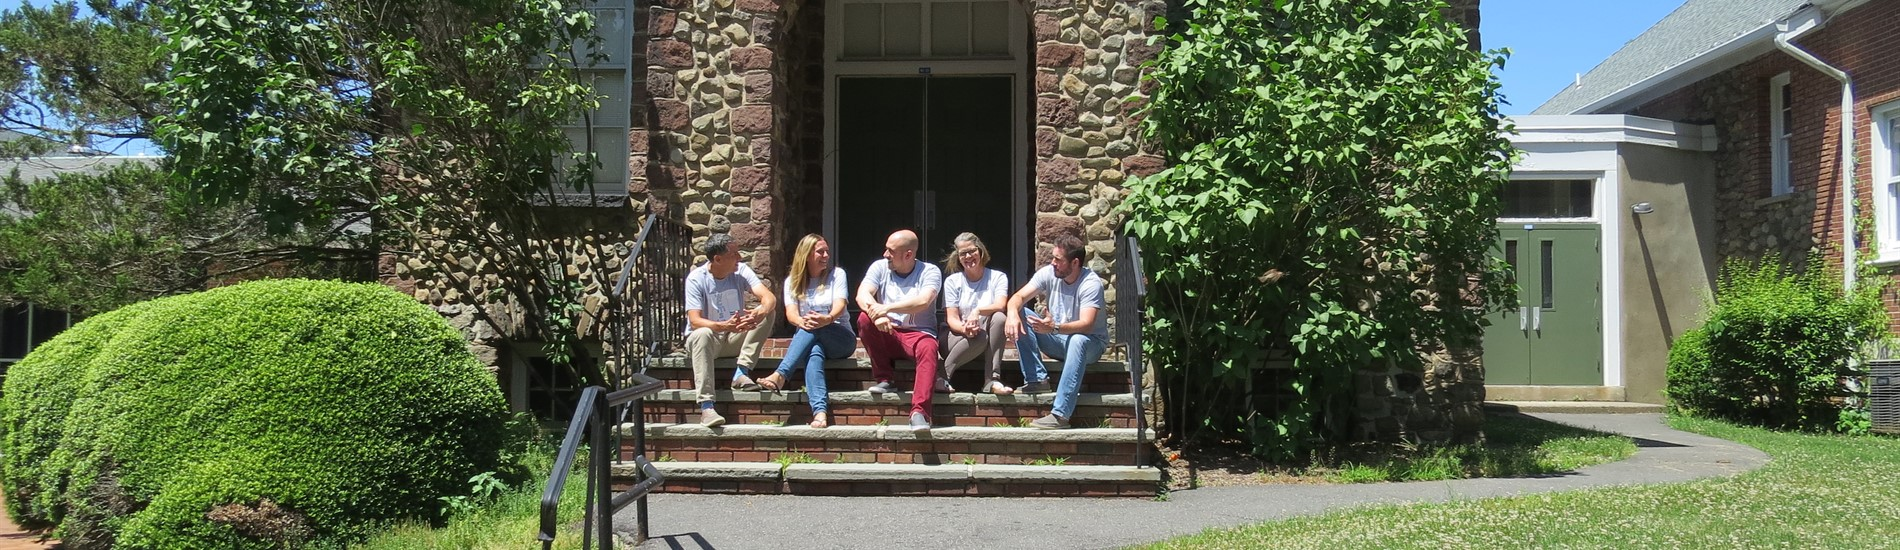 WCMS teachers in front of Old Schoolhouse